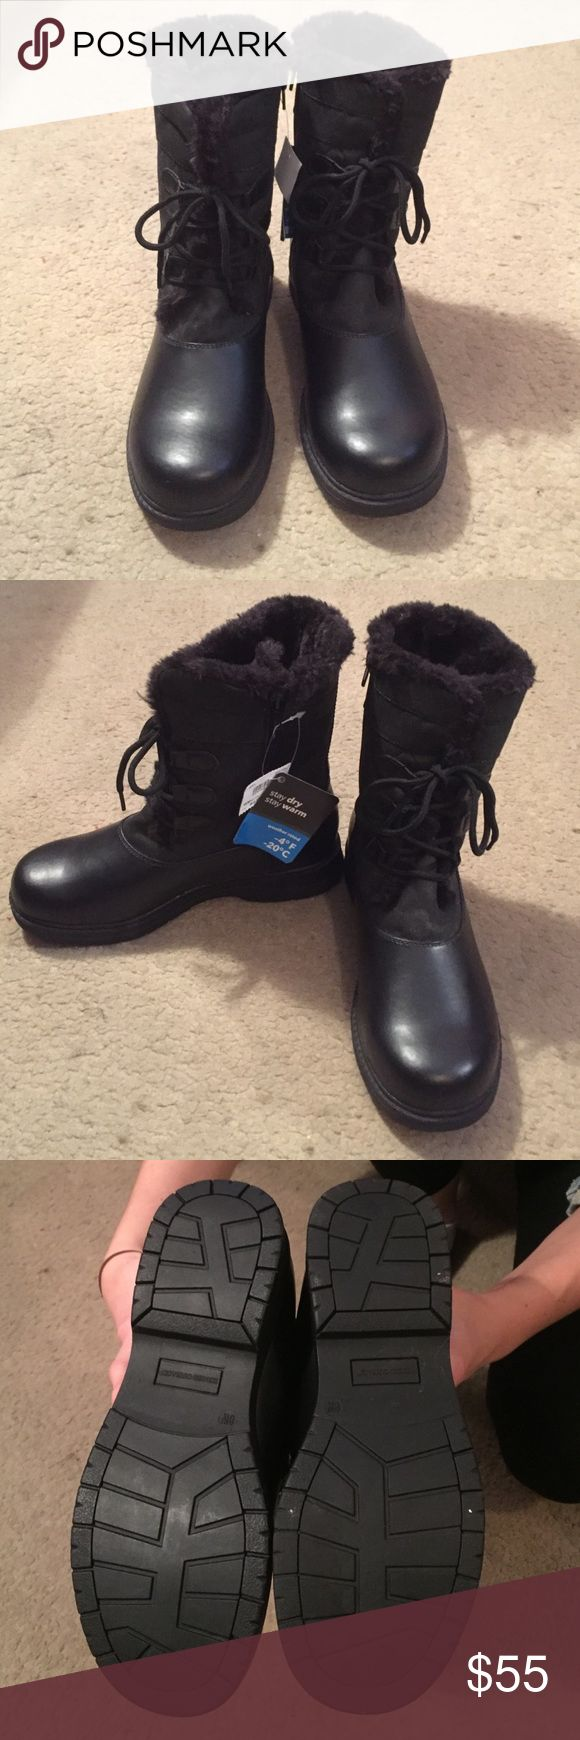 NWT Womens Polar Quilted Weather Boot NWT Black winter boots with soft fur lining. Cute diamond pattern on the outside with easy side zipper. Wear them in the rain or snow! Rugged Outback Shoes Winter & Rain Boots